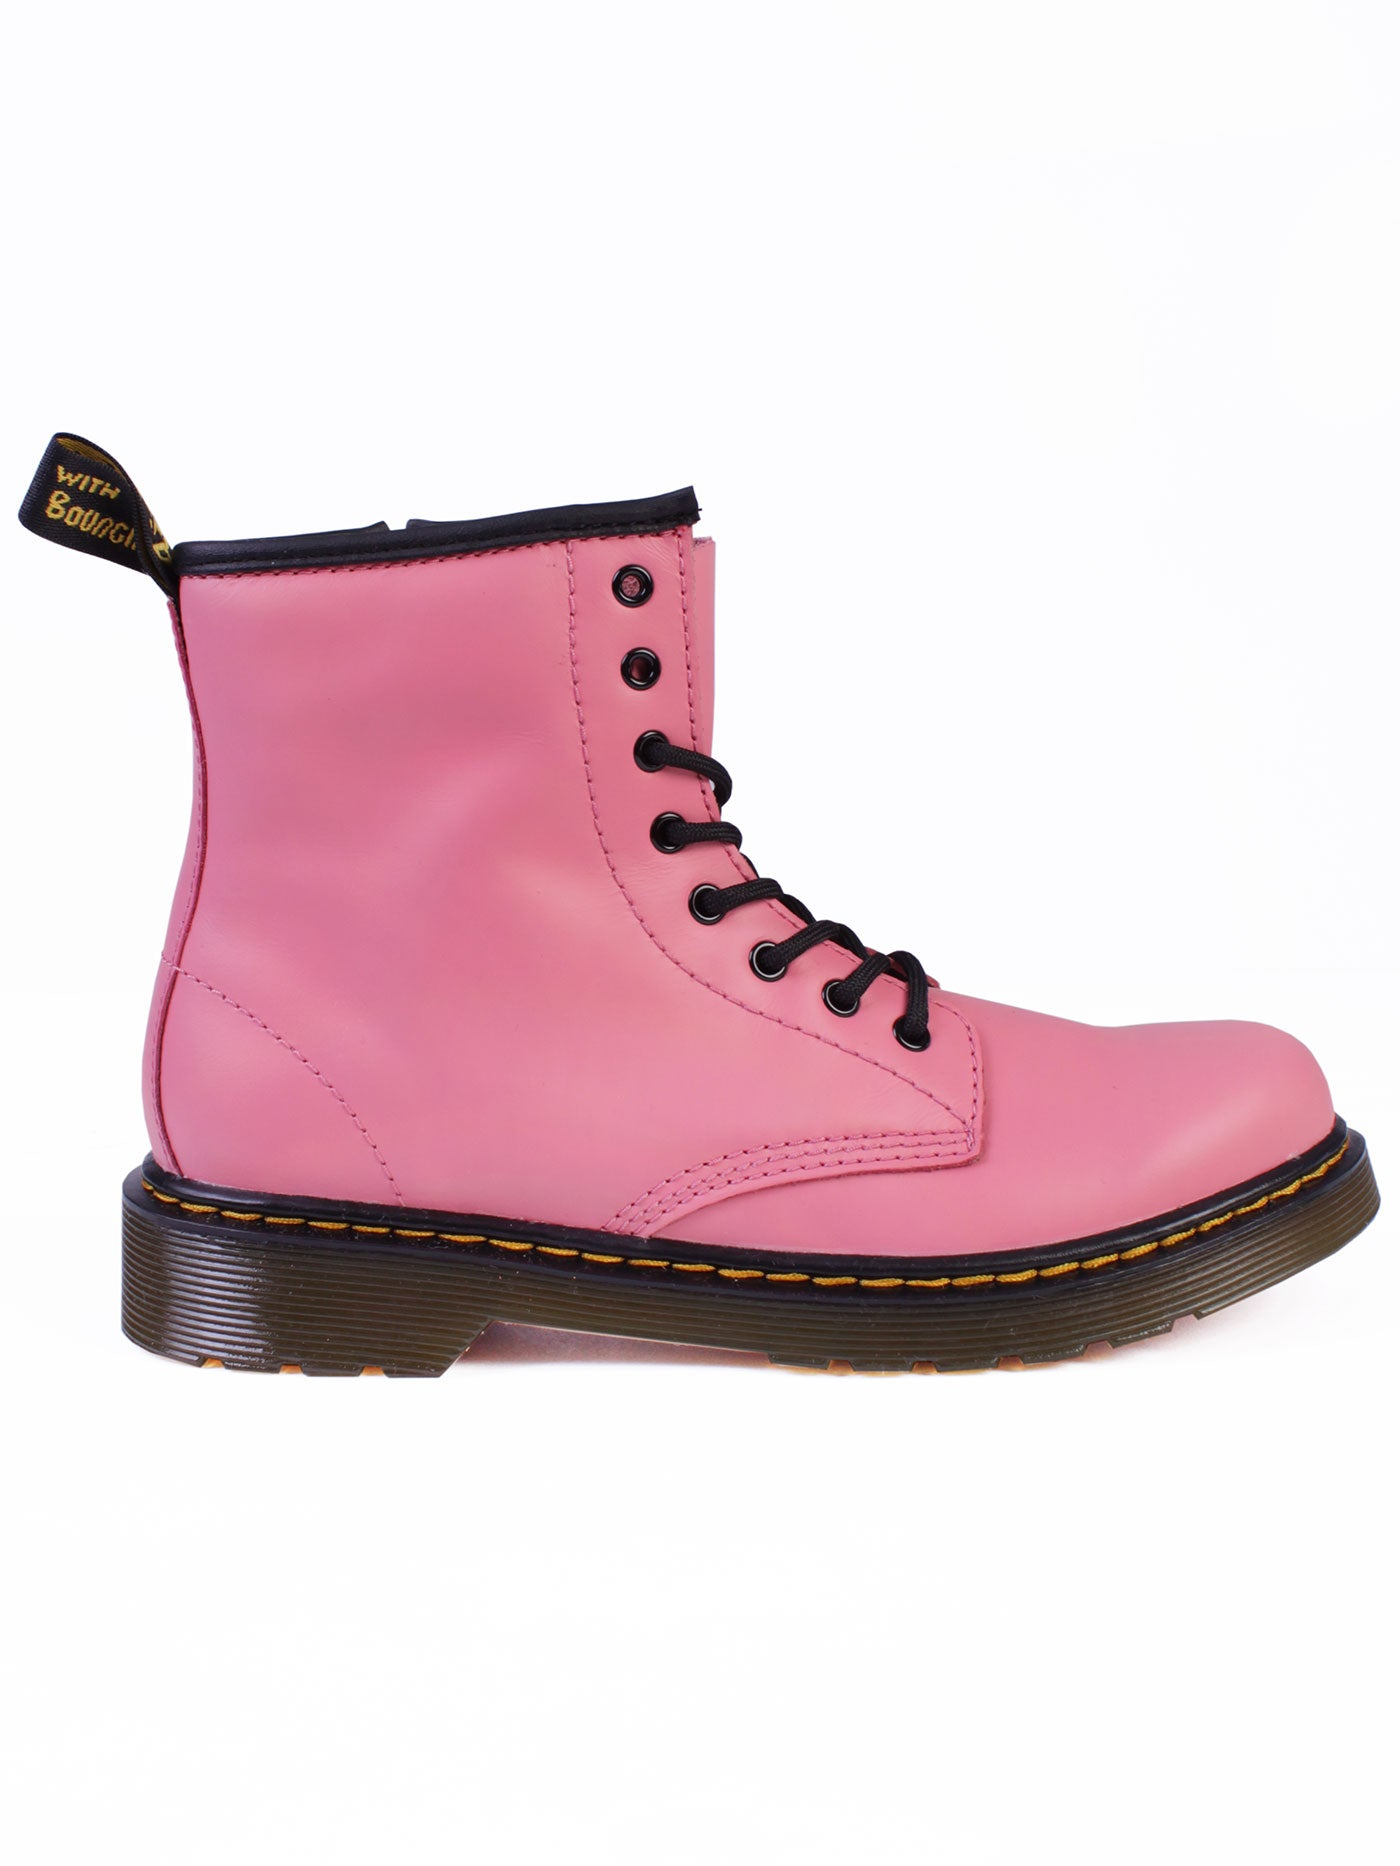 1460 Boots (Girl)